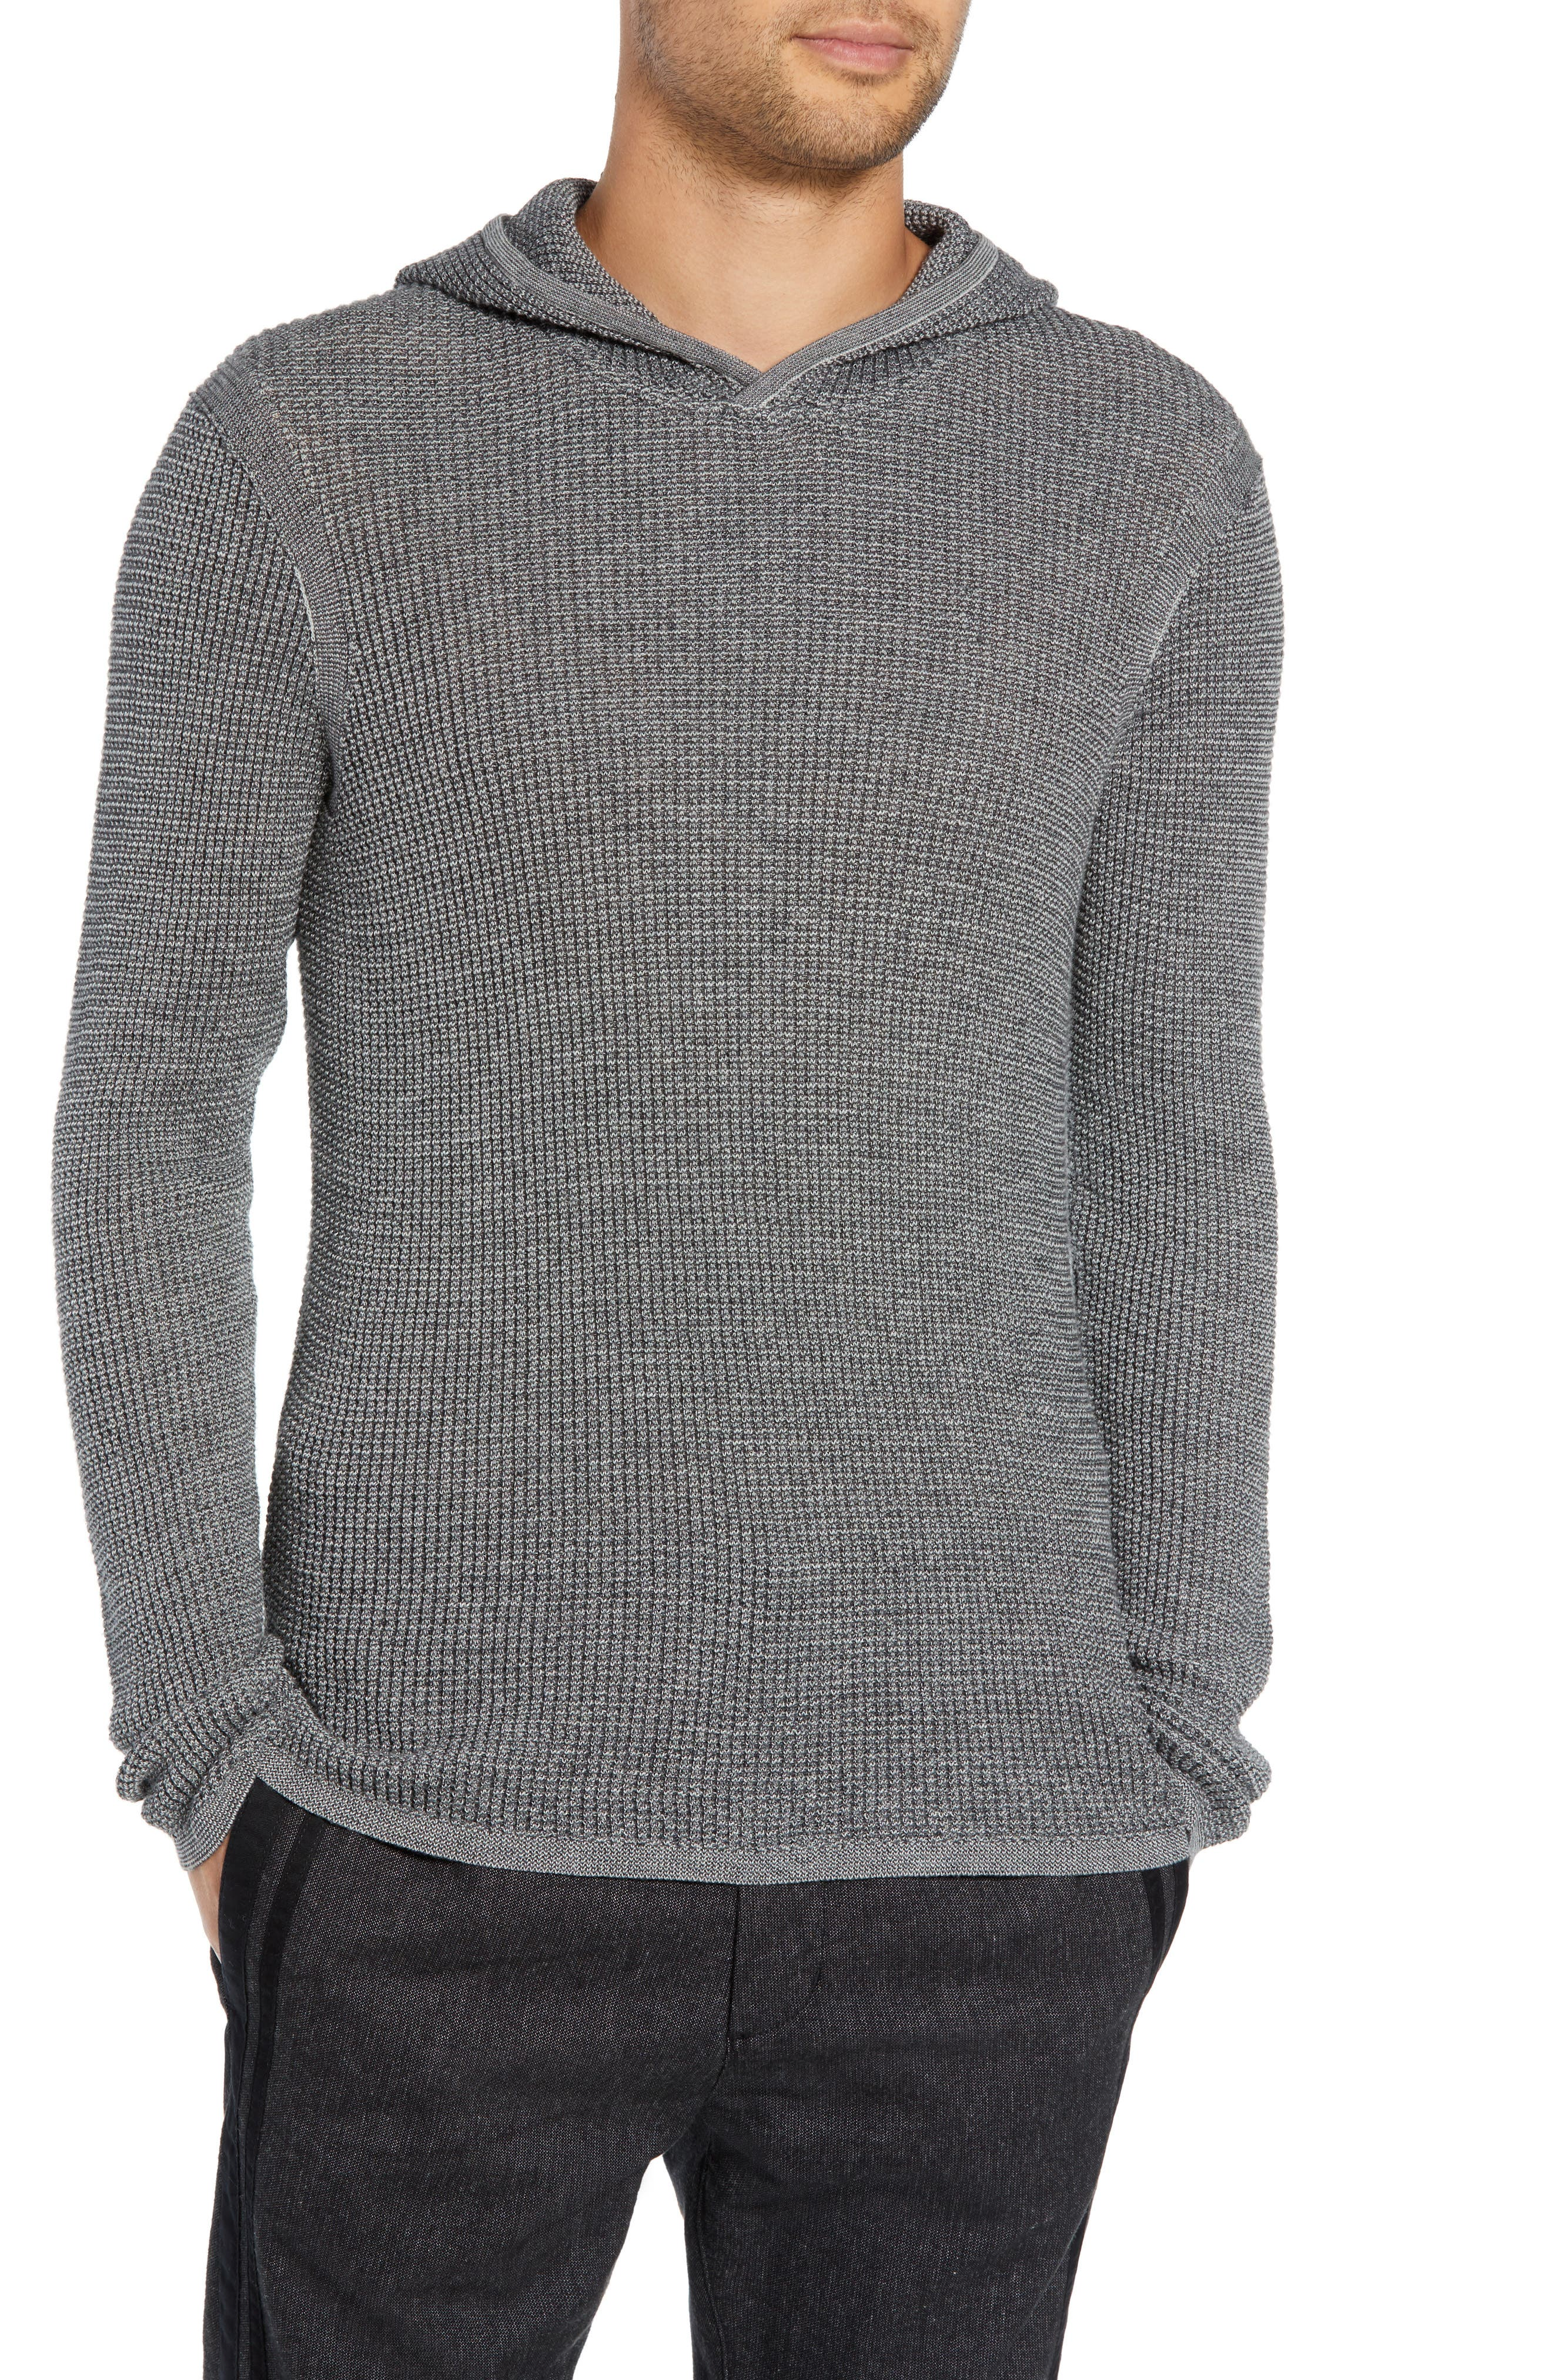 Thermal Hooded Sweater,                             Main thumbnail 1, color,                             CHARCOAL HEATHER